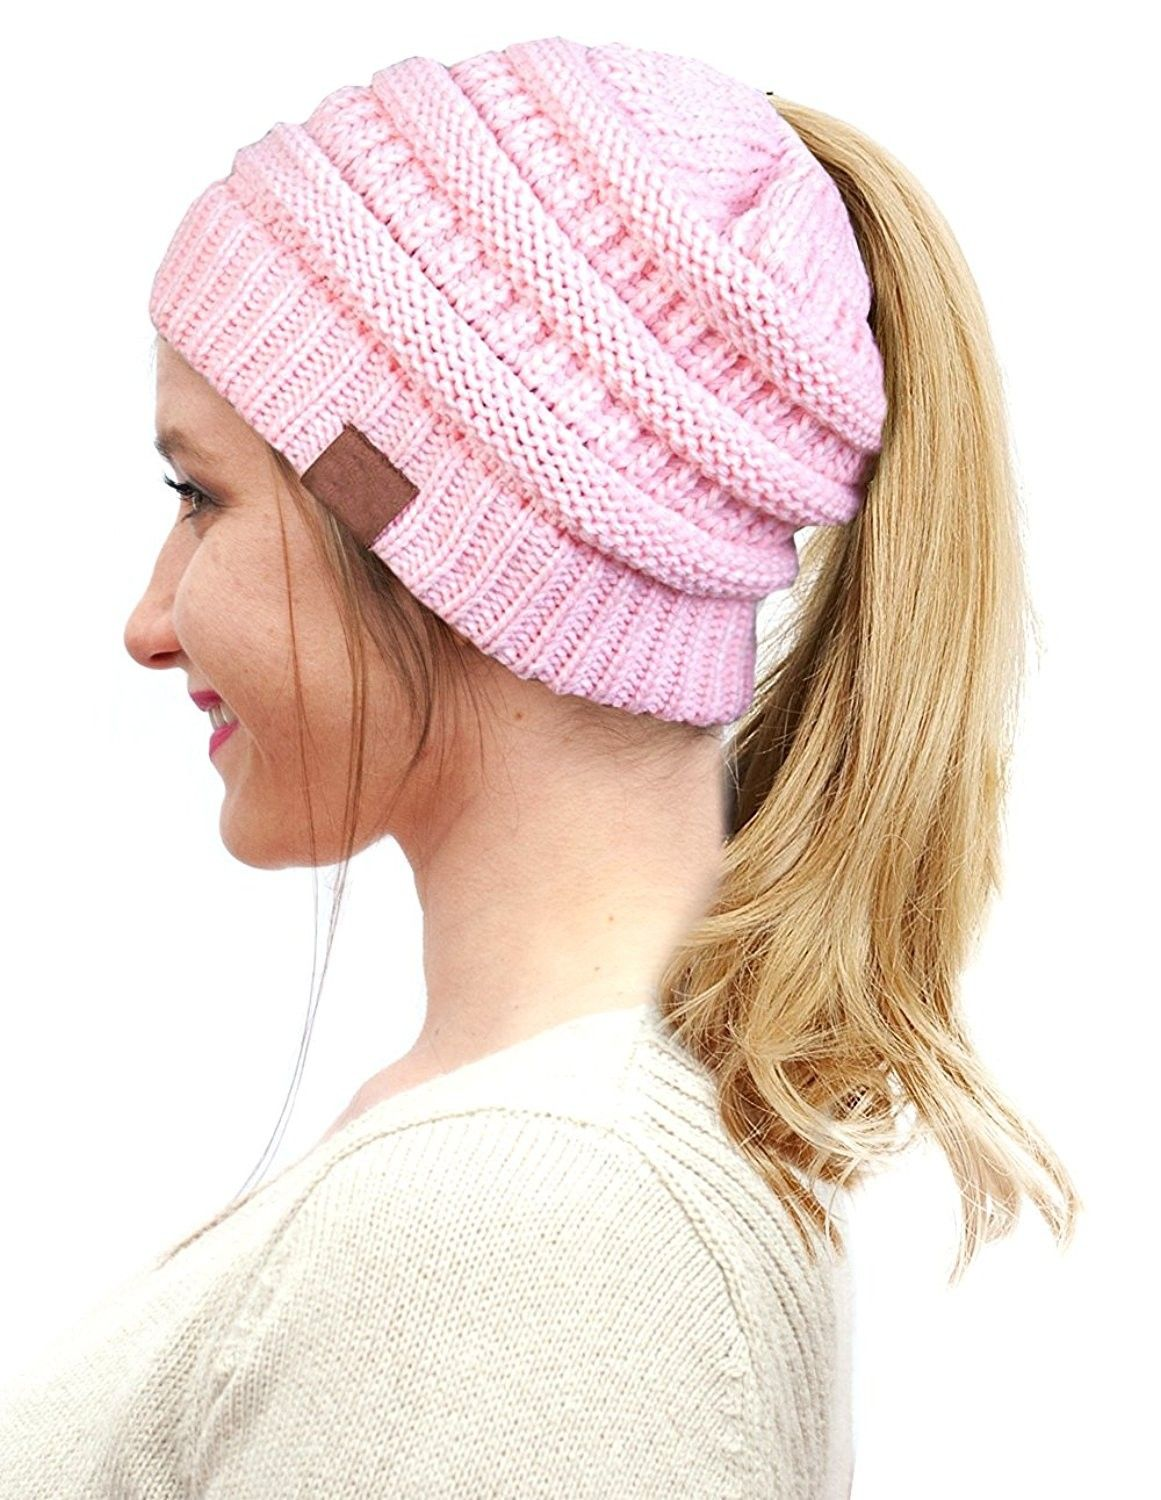 BeanieTail Soft Stretch Cable Knit Messy High Bun Ponytail Winter Women  Beanie Hat - A-baby Pink - CE188K4X2ZZ - Hats   Caps a4c6bafd58be